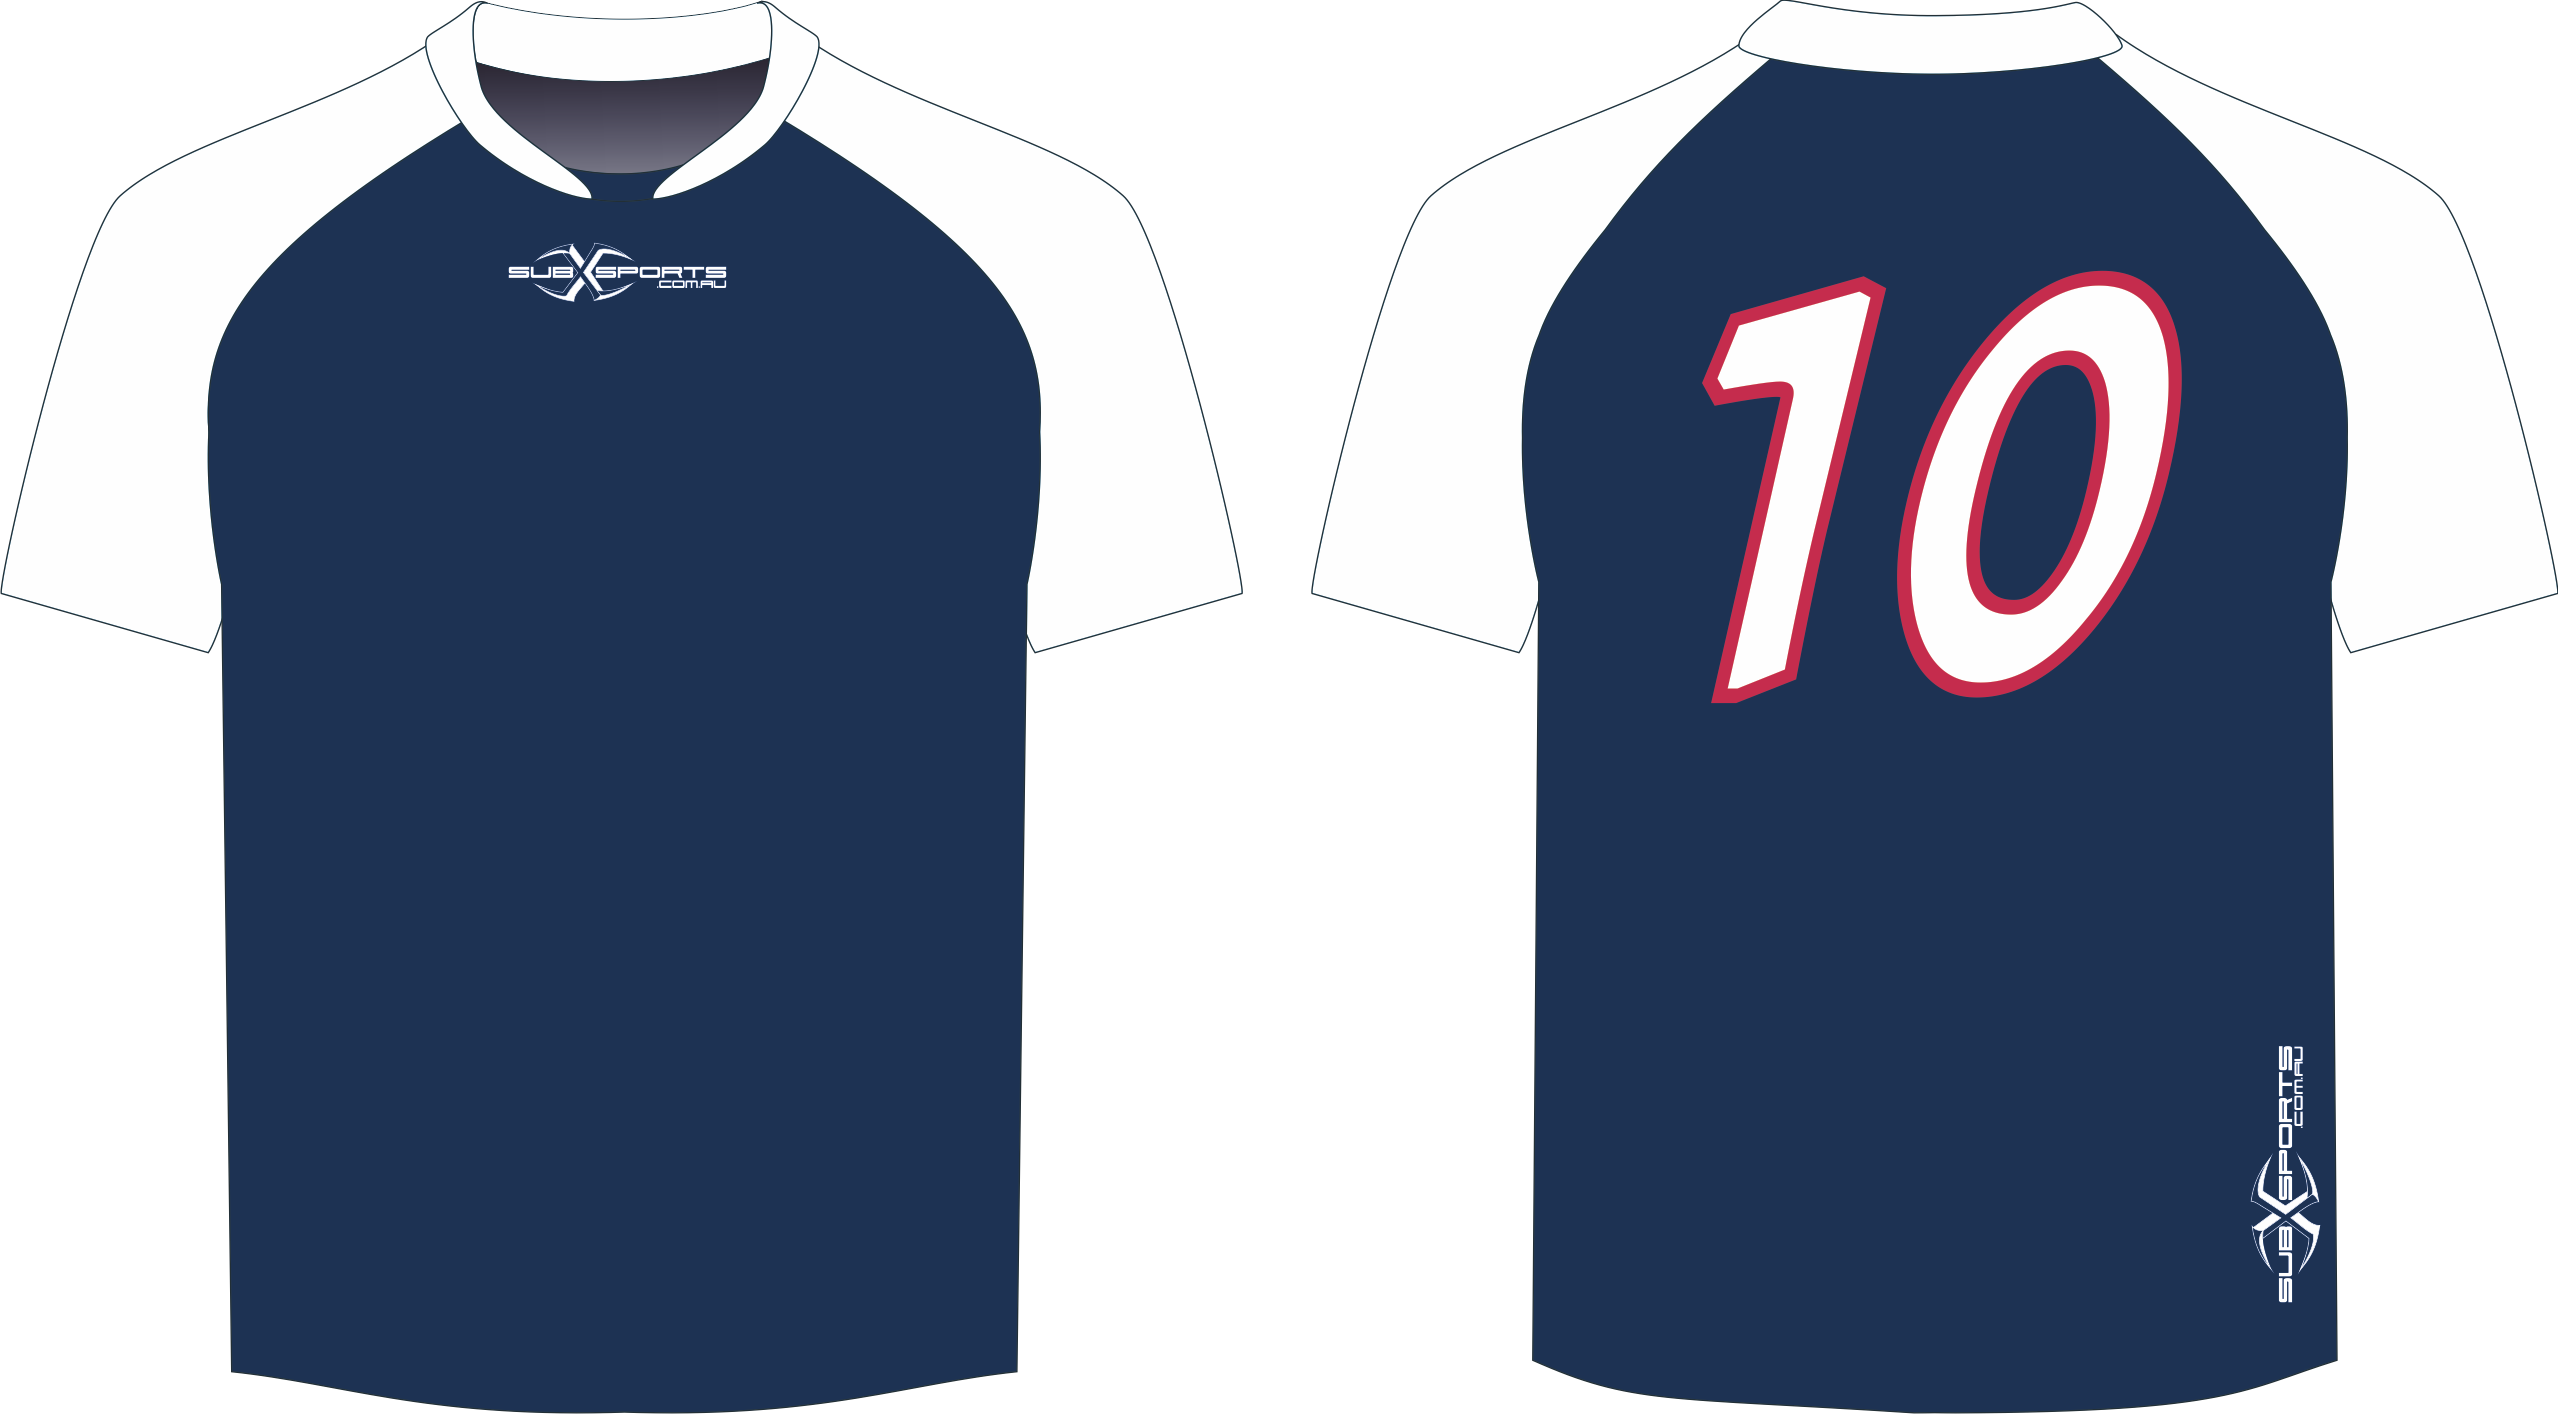 S206XJ Jersey Navy White.png